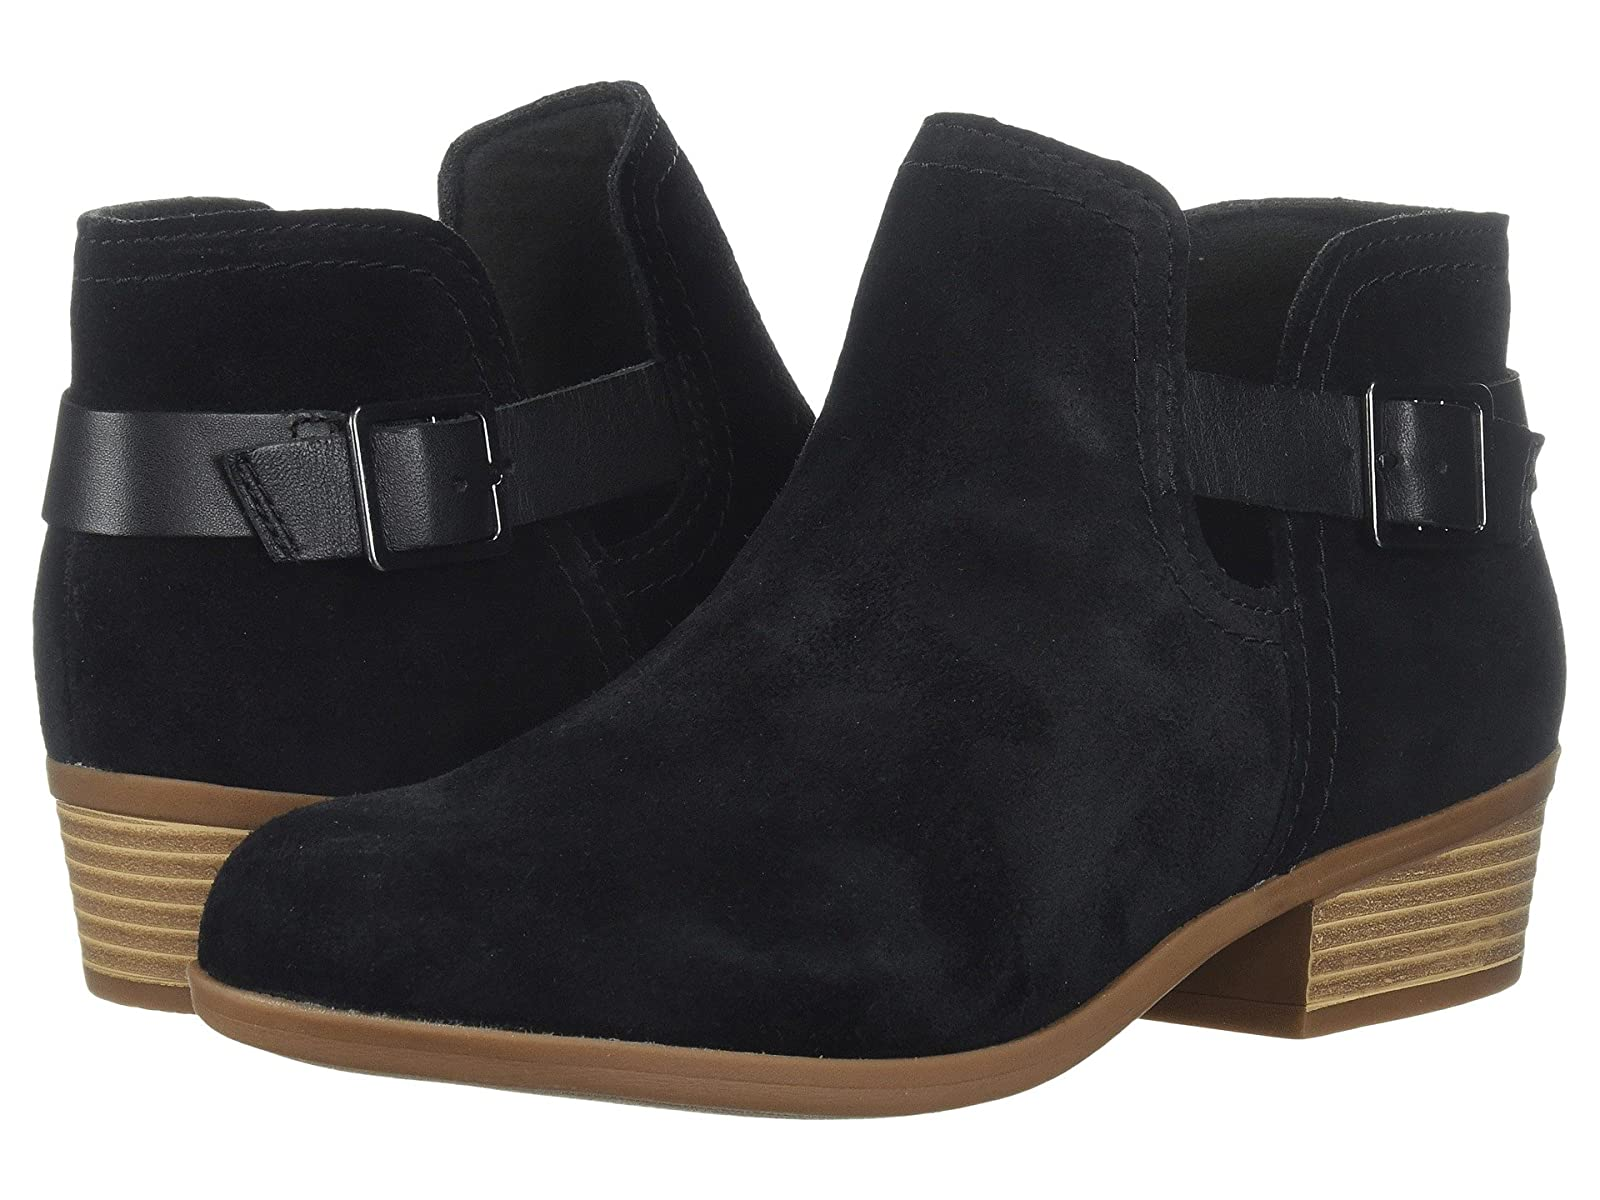 Clarks Addiy CarisaCheap and distinctive eye-catching shoes